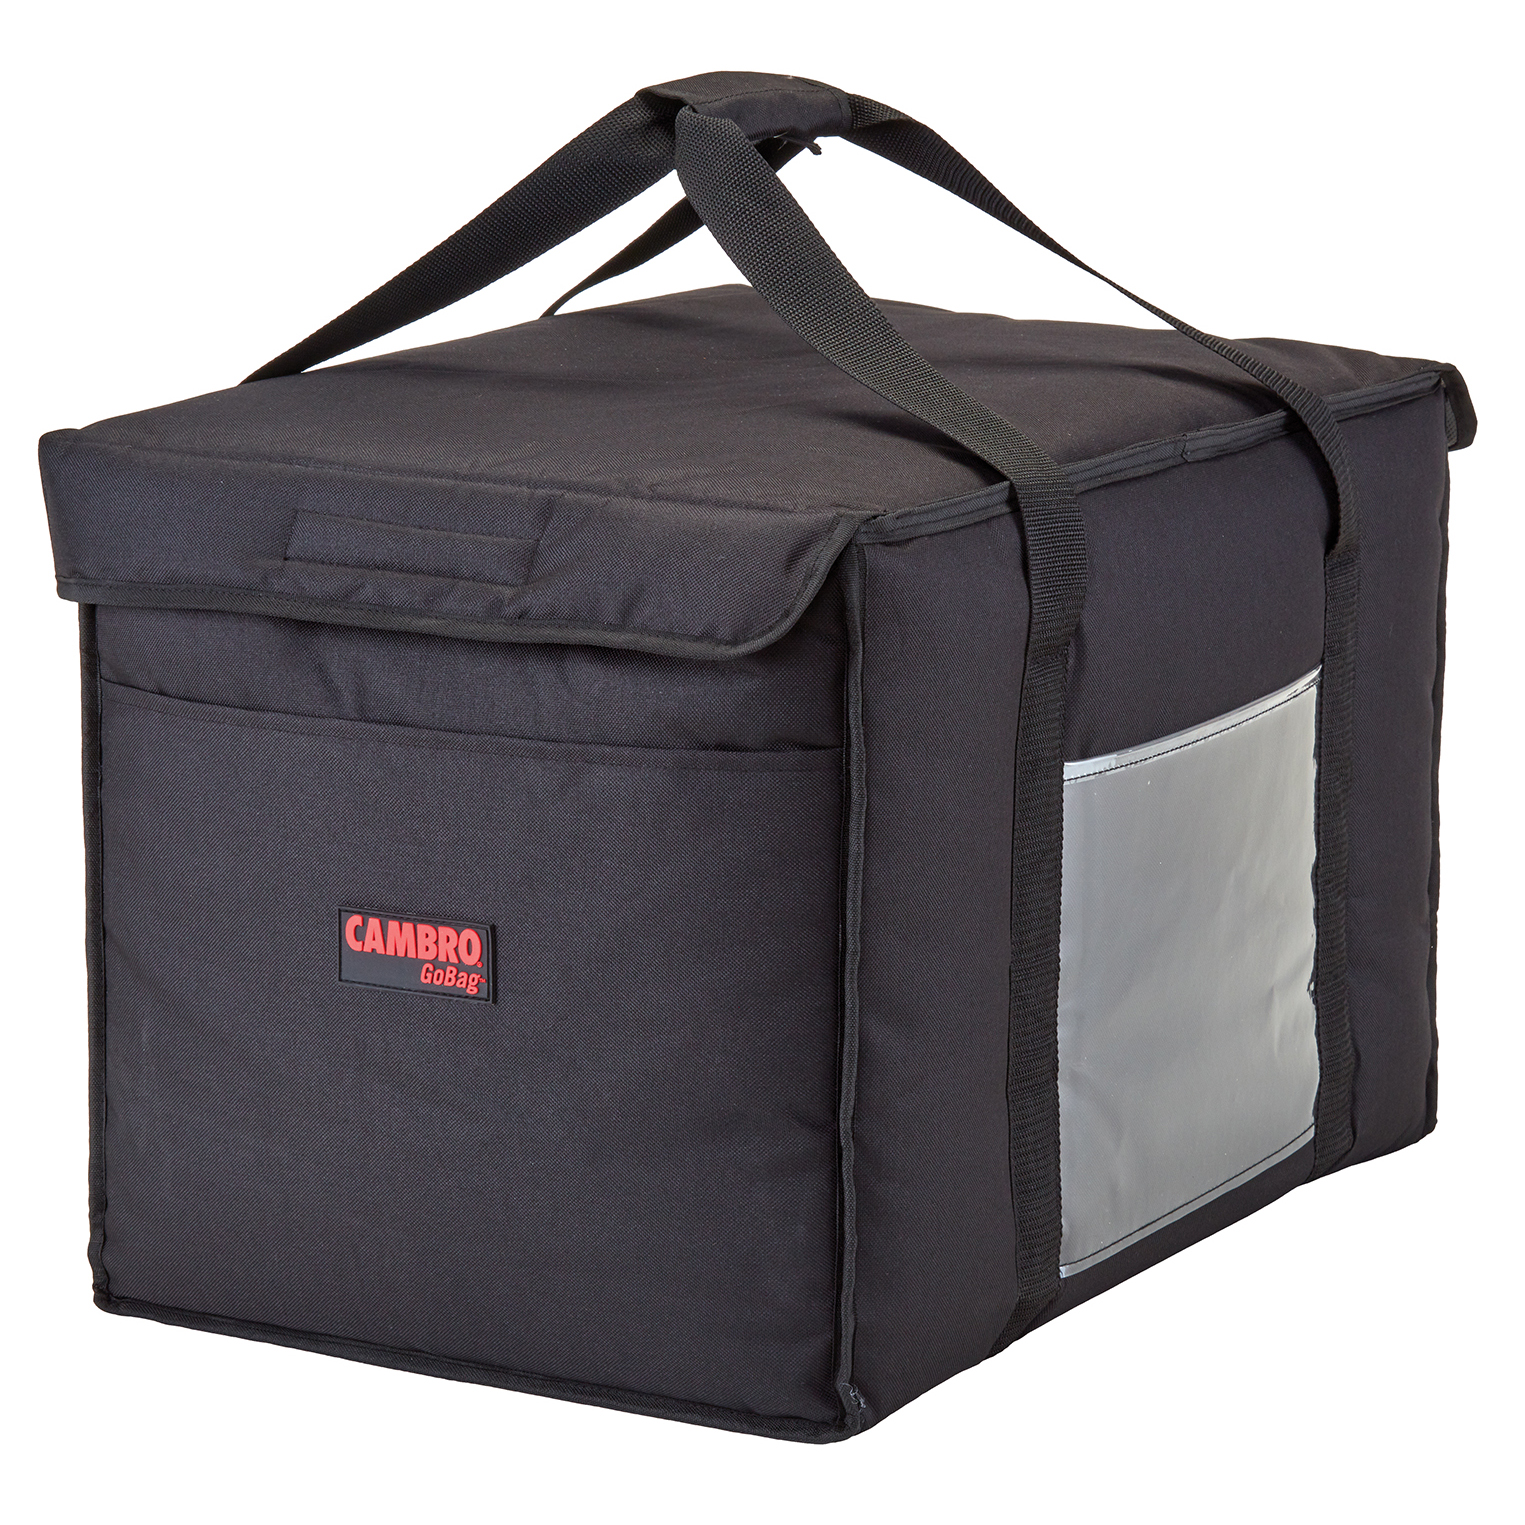 Cambro GBD211414110 delivery bag